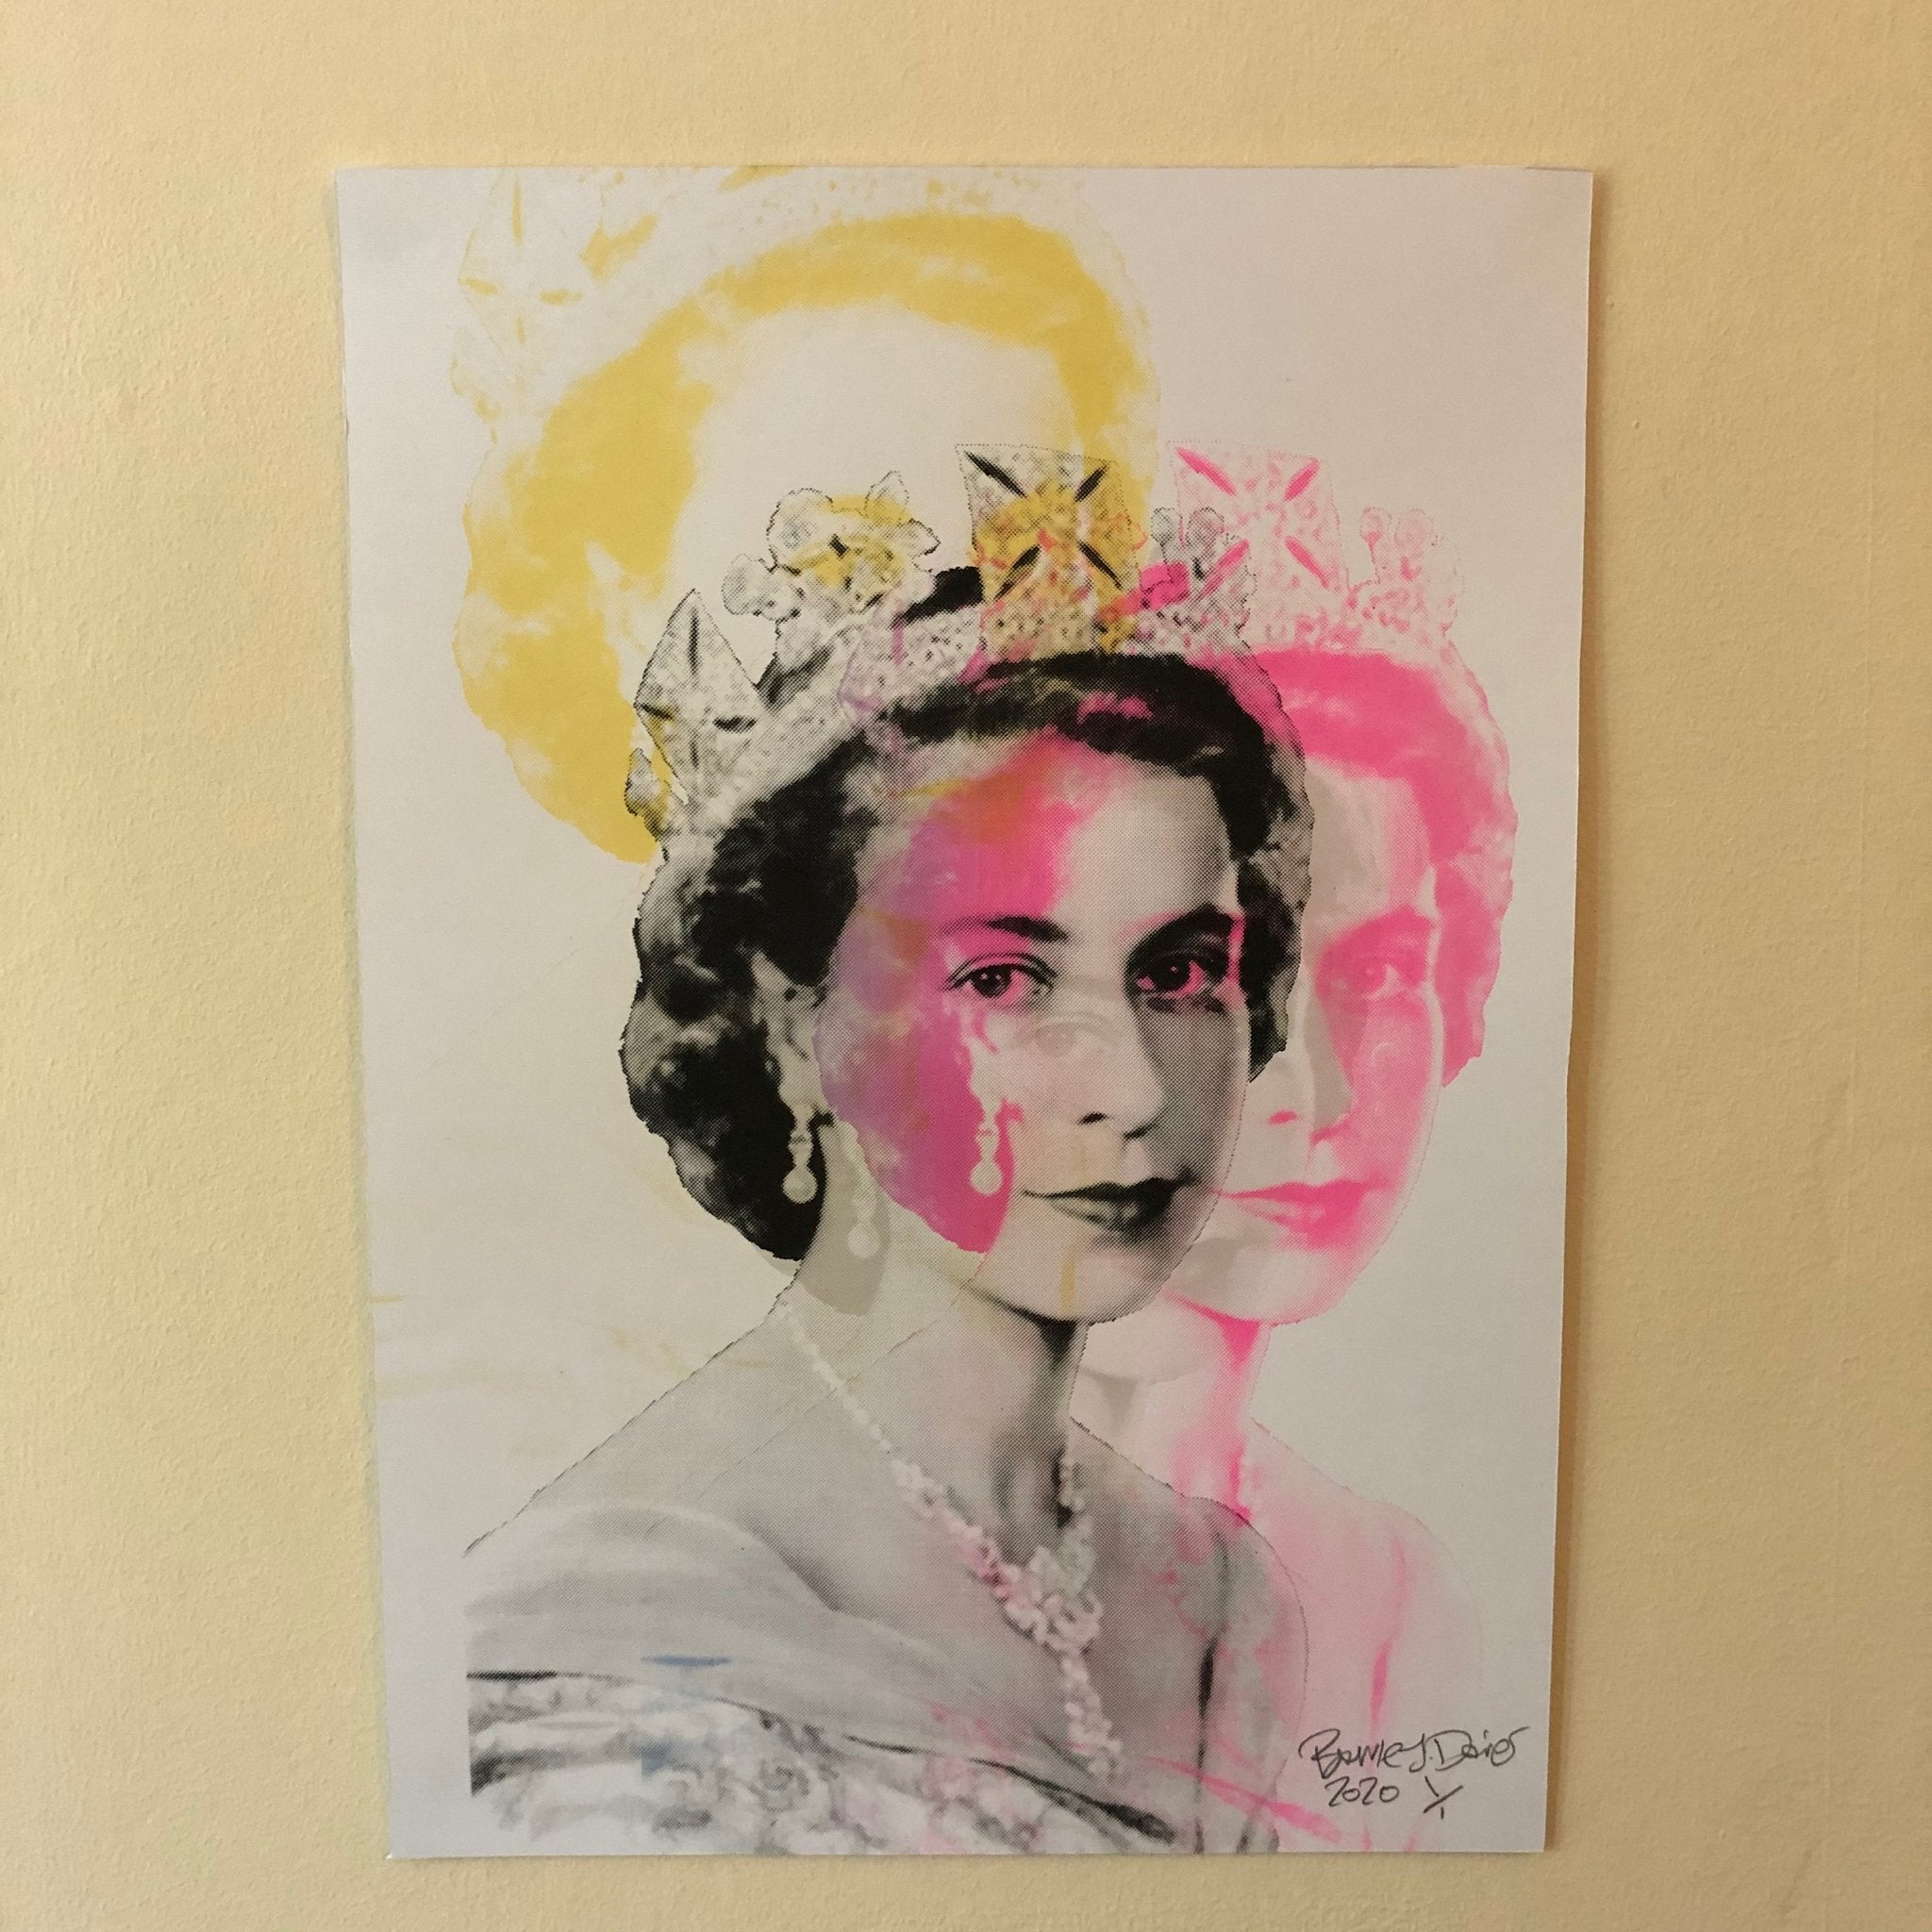 The Queen Print by Barrie J Davies 2020 - unframed Silkscreen print on paper (hand finished) edition of 1/1 - A3 size 29cm x 42cm. Barrie J Davies is an Artist - Pop Art and Street art inspired Artist based in Brighton England UK - Pop Art Paintings, Street Art Prints & Editions available